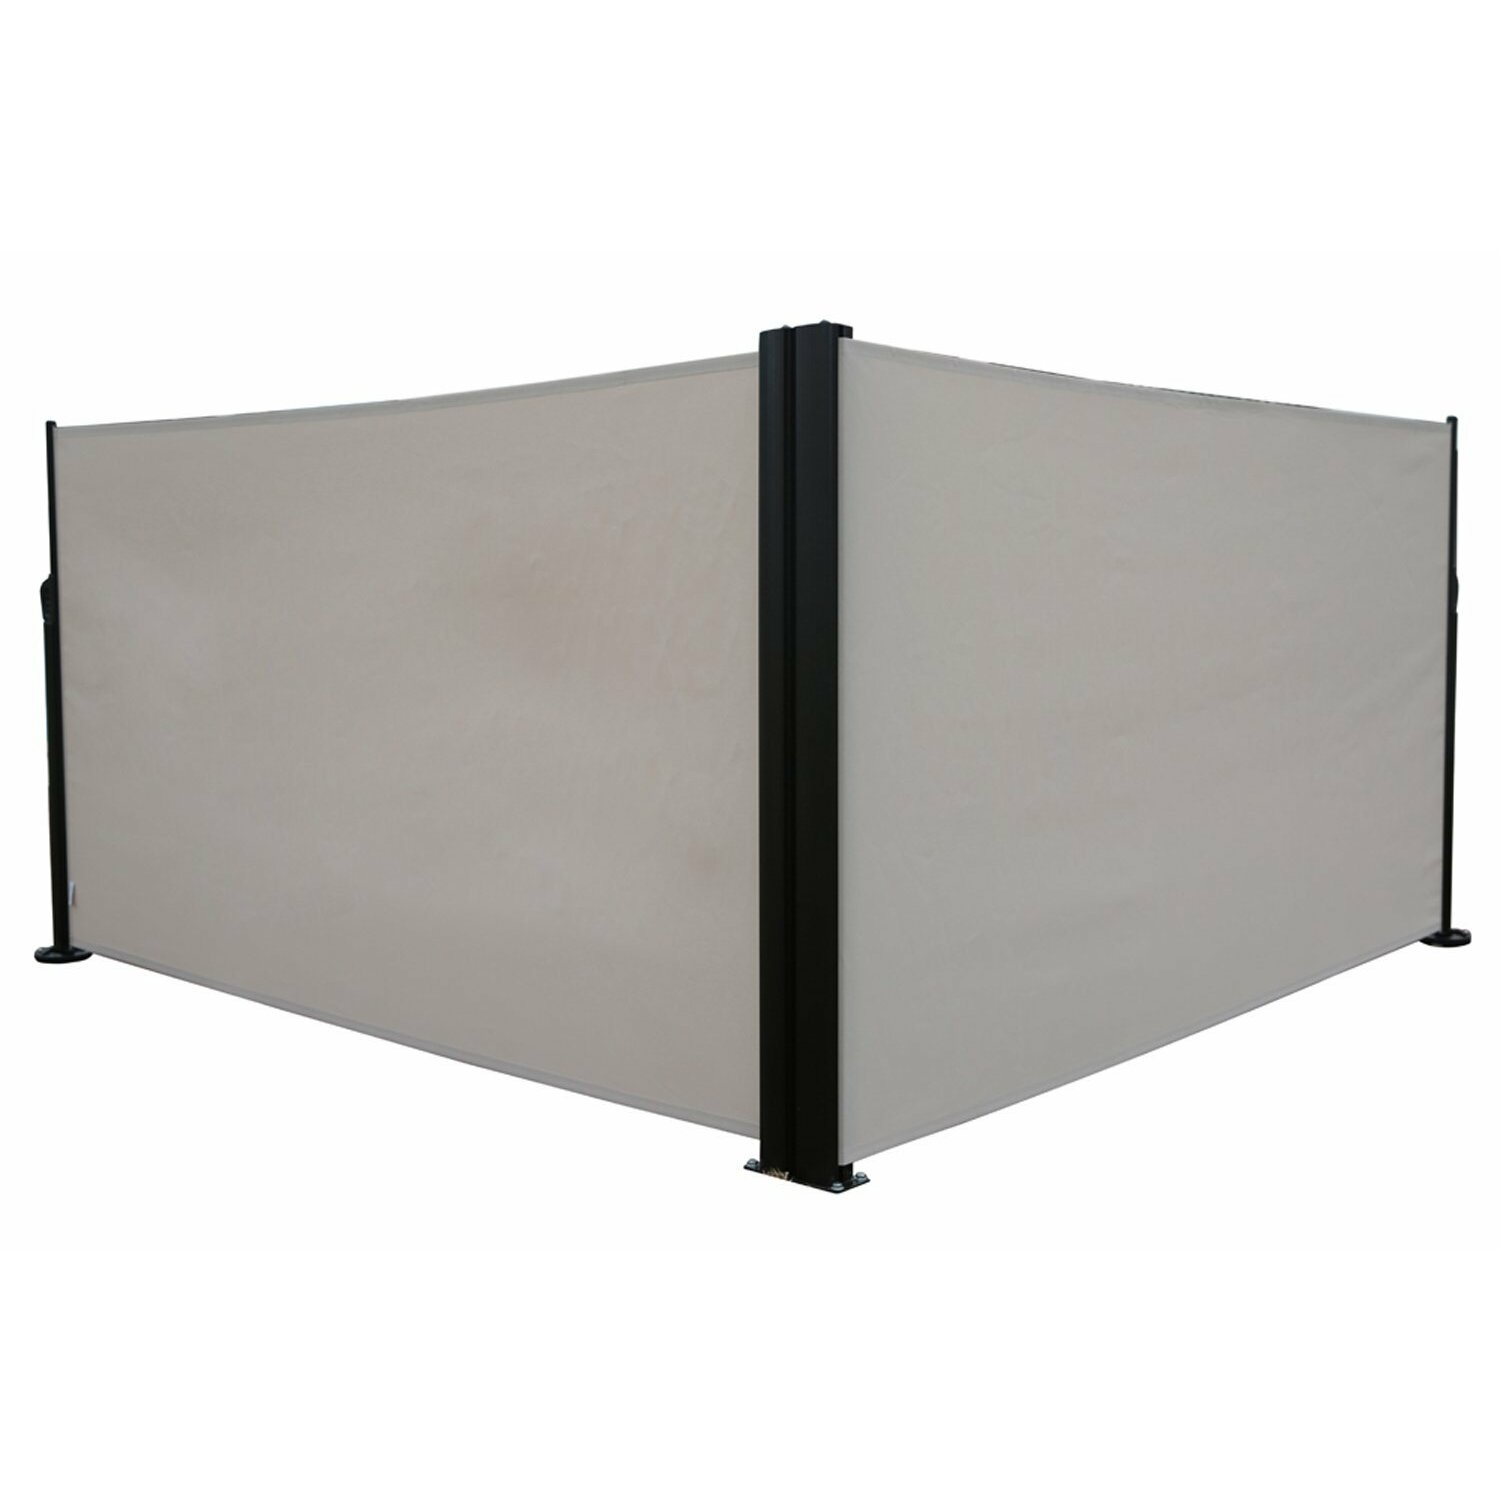 Abba Patio 62 4 X 236 4 Retractable Folding Screen Fence